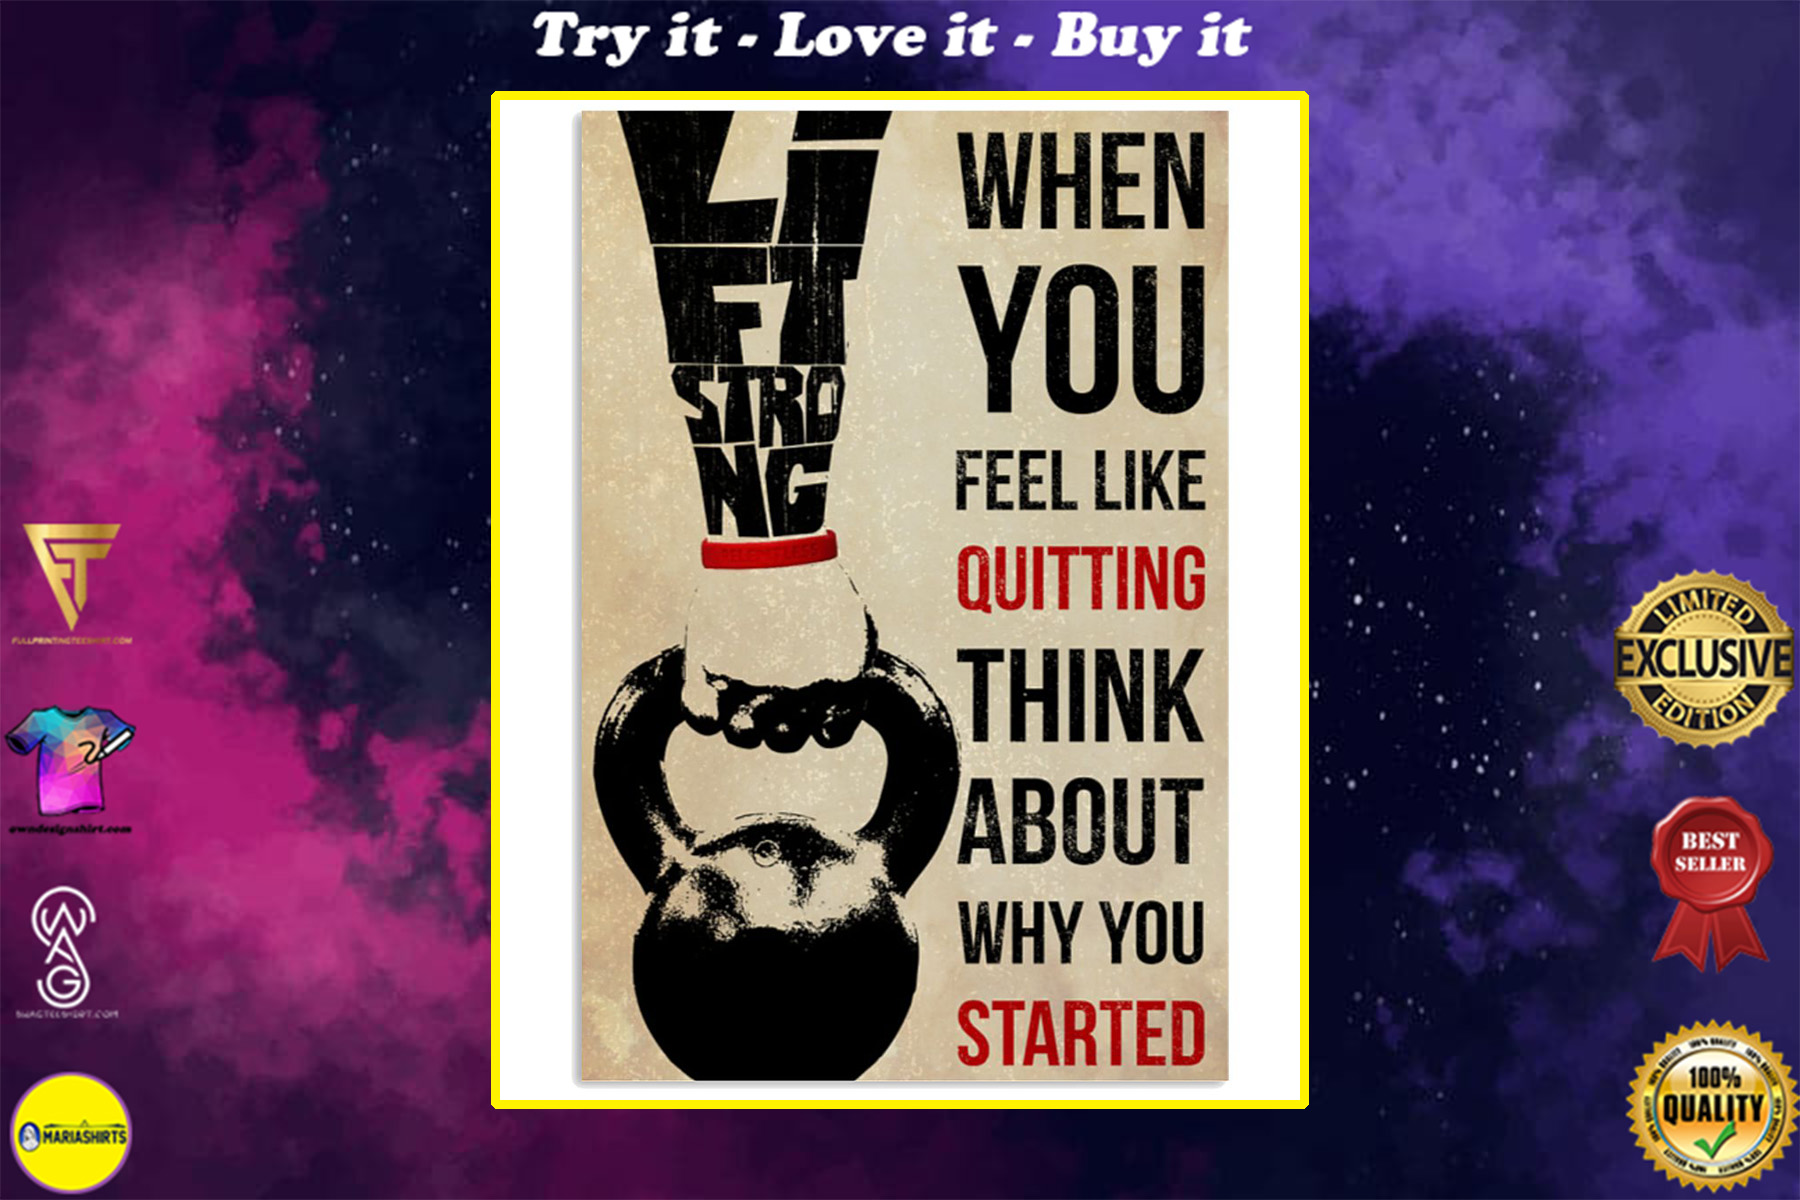 training when you feel like quitting think about why you started poster